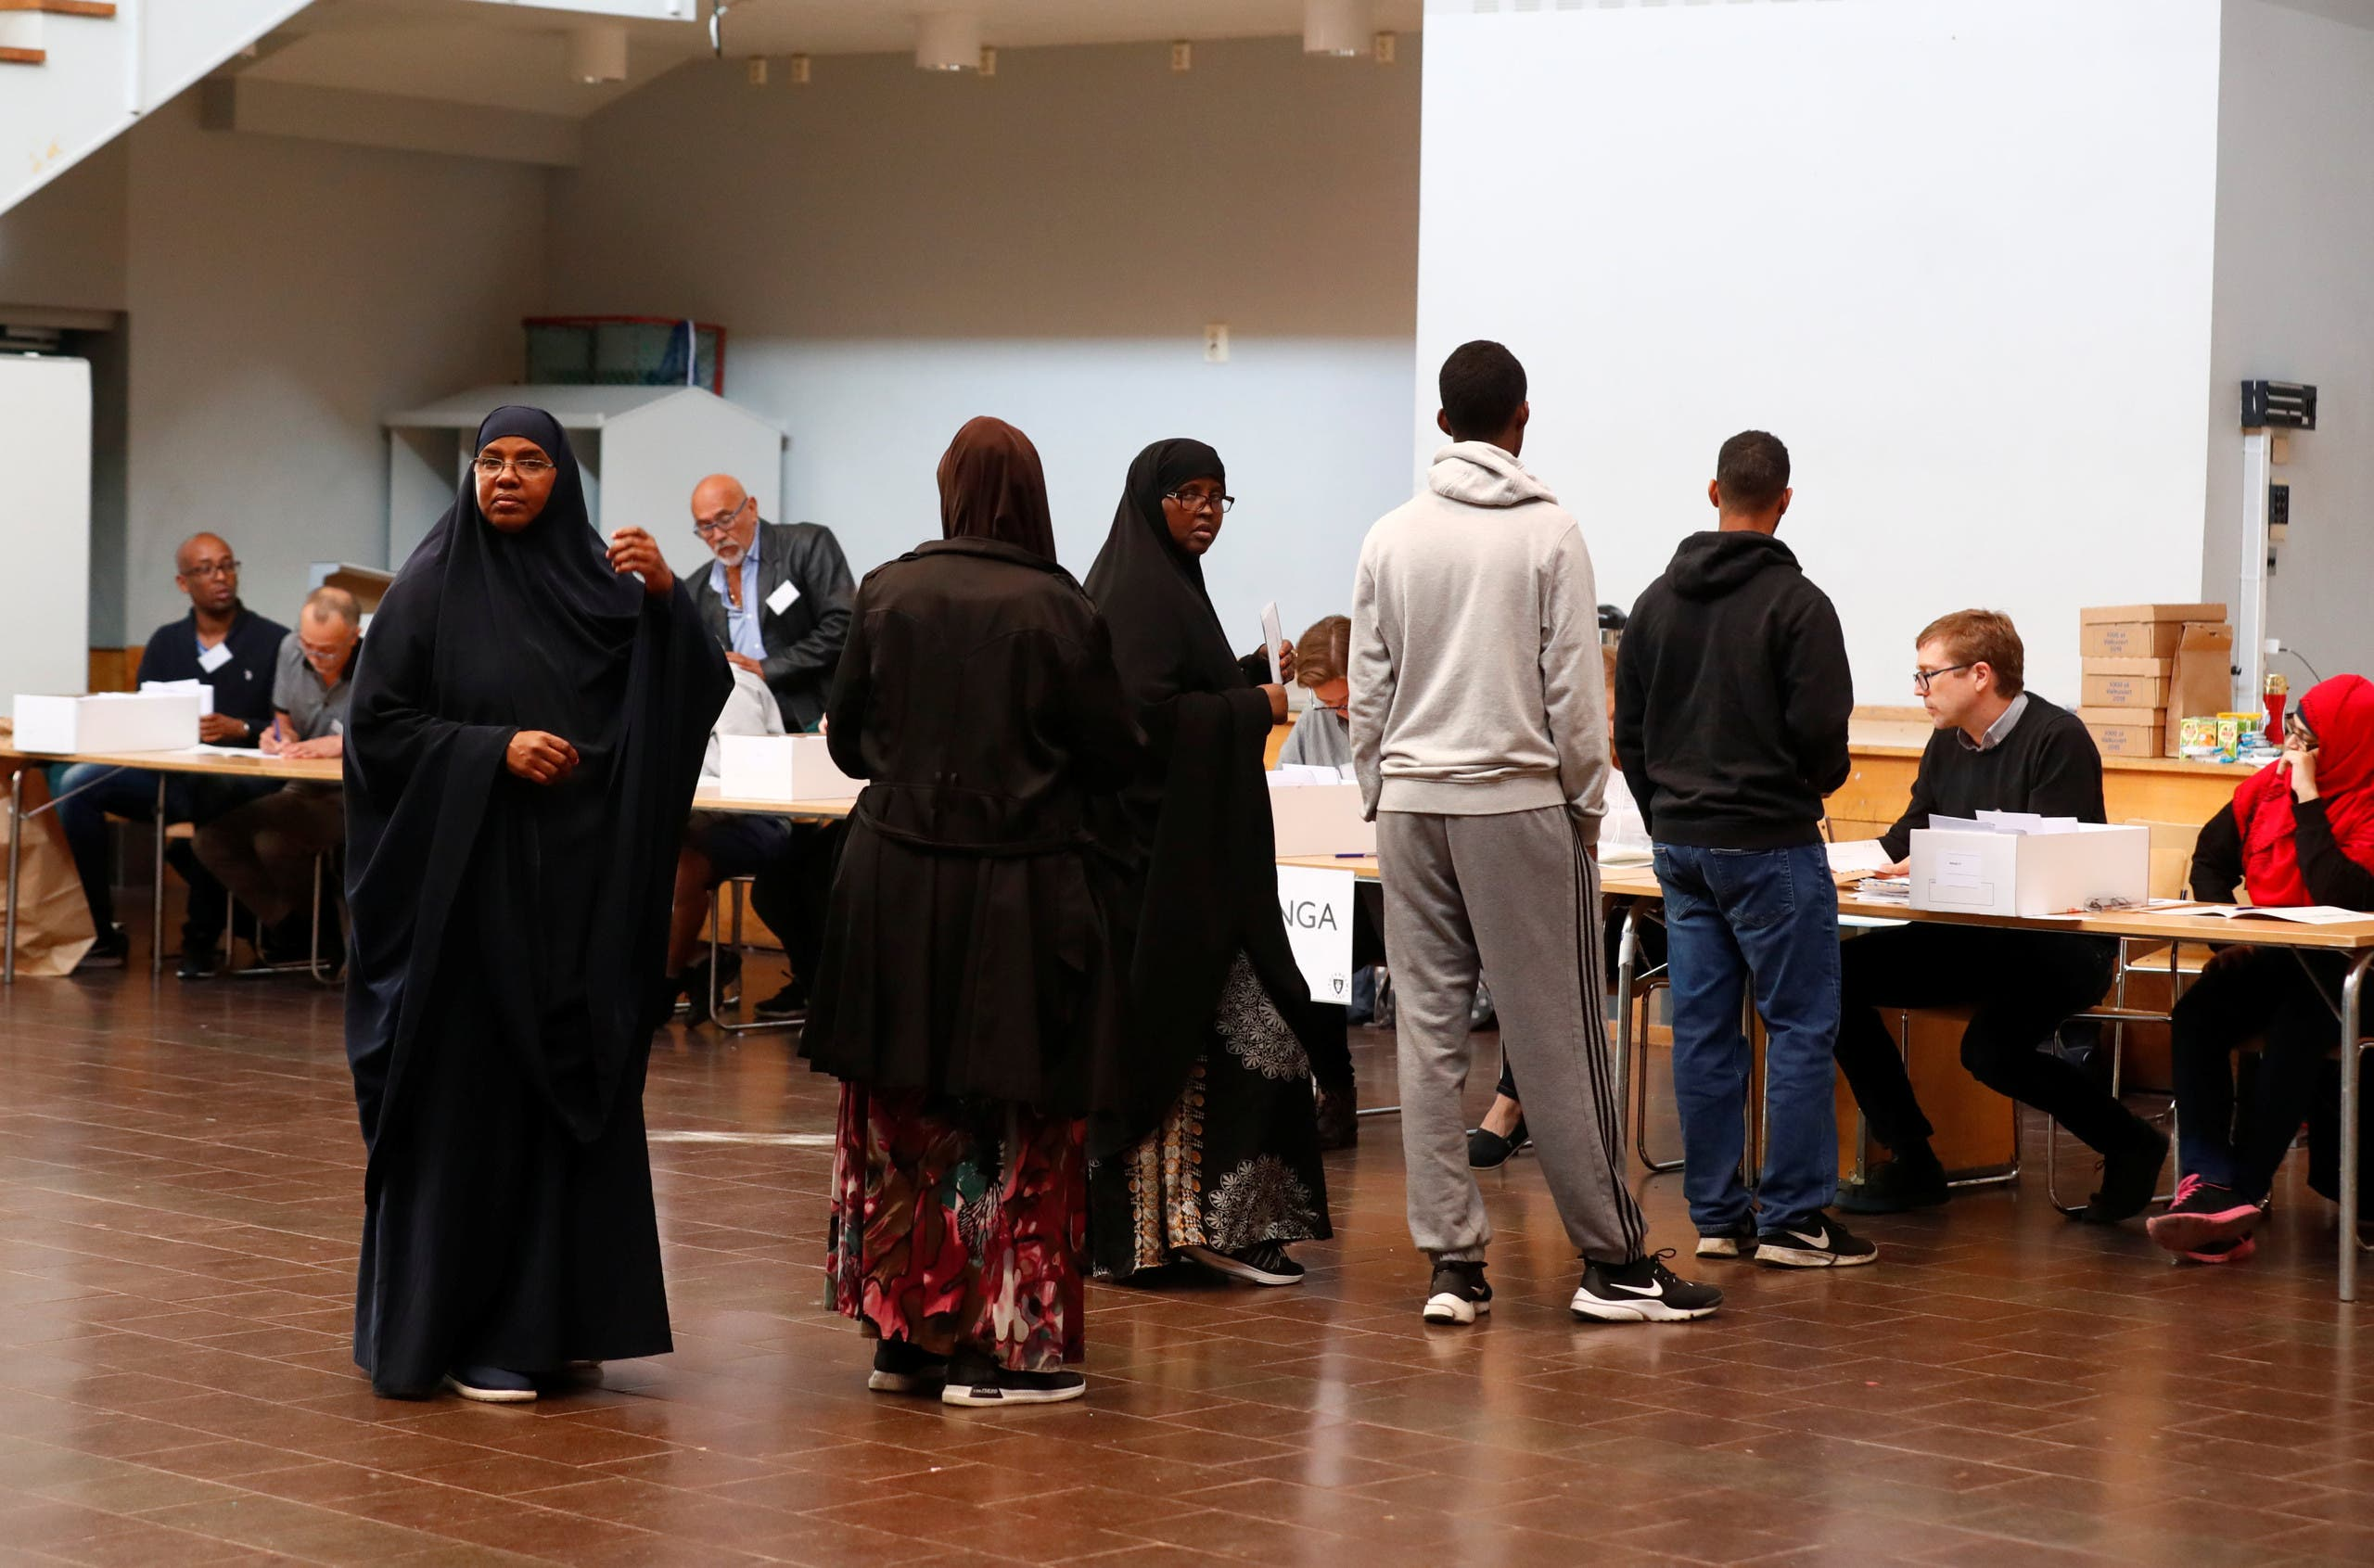 People arrive at a polling station during a general election, in the Rinkeby neighbourhood in Stockholm. (AP)